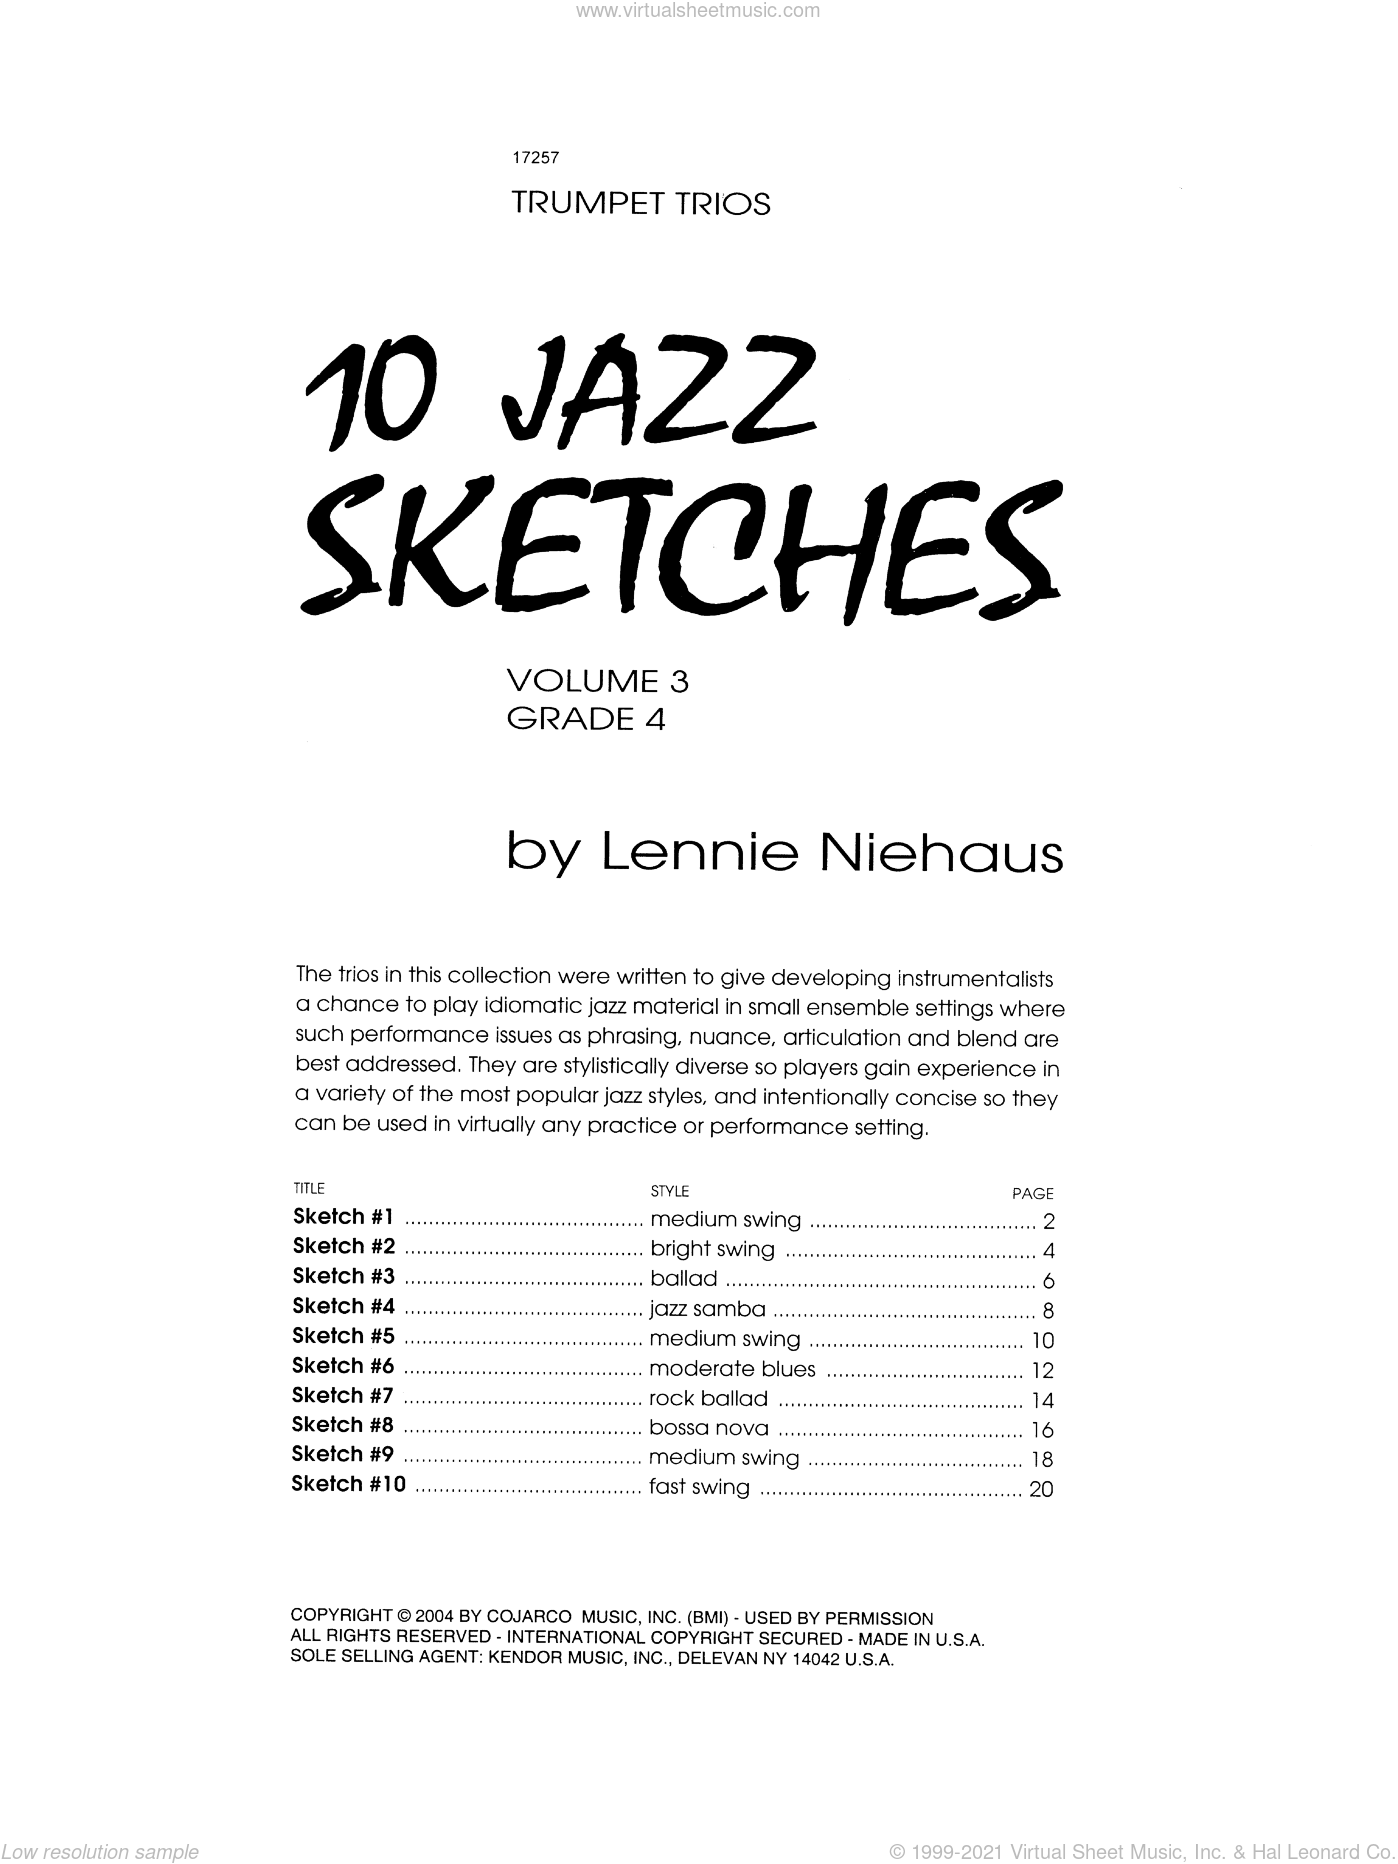 10 Jazz Sketches, Volume 3 sheet music for trumpet trio by Lennie Niehaus. Score Image Preview.